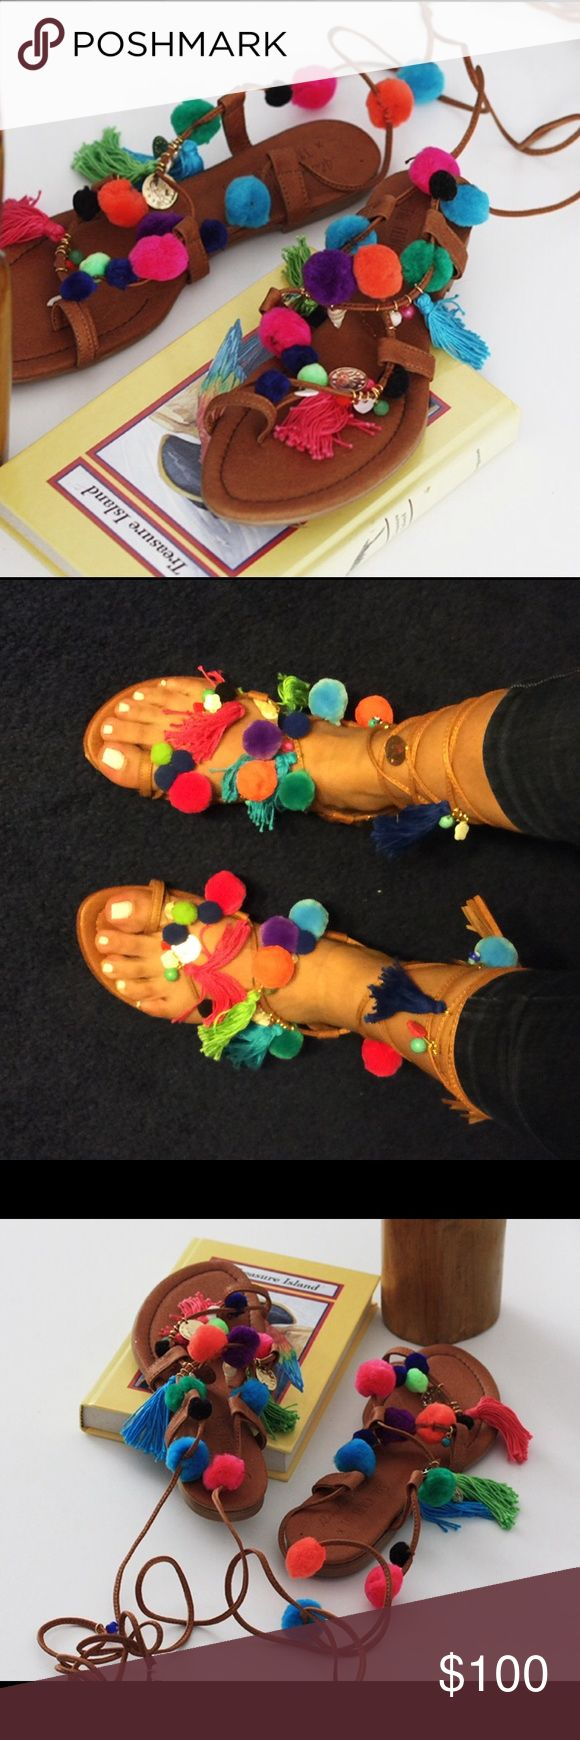 Alameda Turquesa- Real Leather Pom-Pom Sandals Never worn BRAND NEW Alameda Turquesa from Europe size 39 Alameda Turquesa  Shoes Sandals